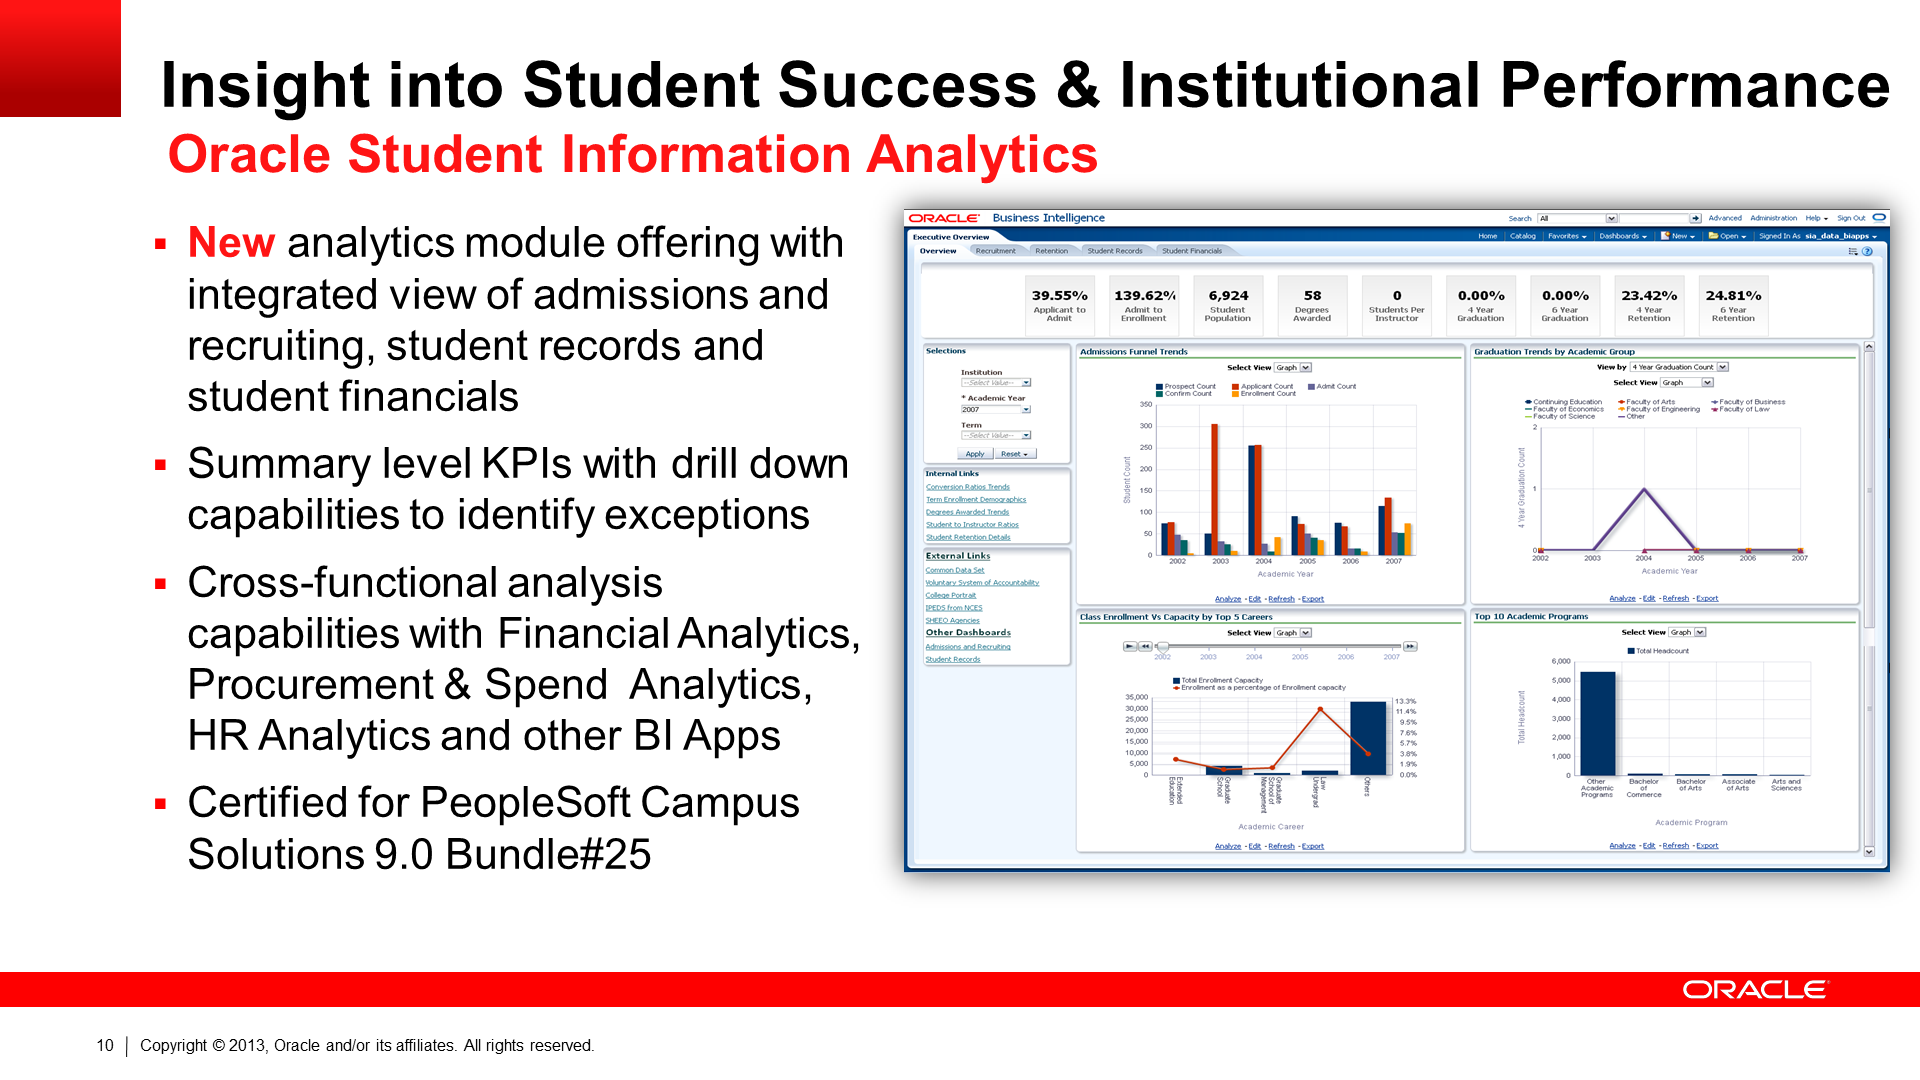 New Student Analytics Application in OBIA 11.1.1.7